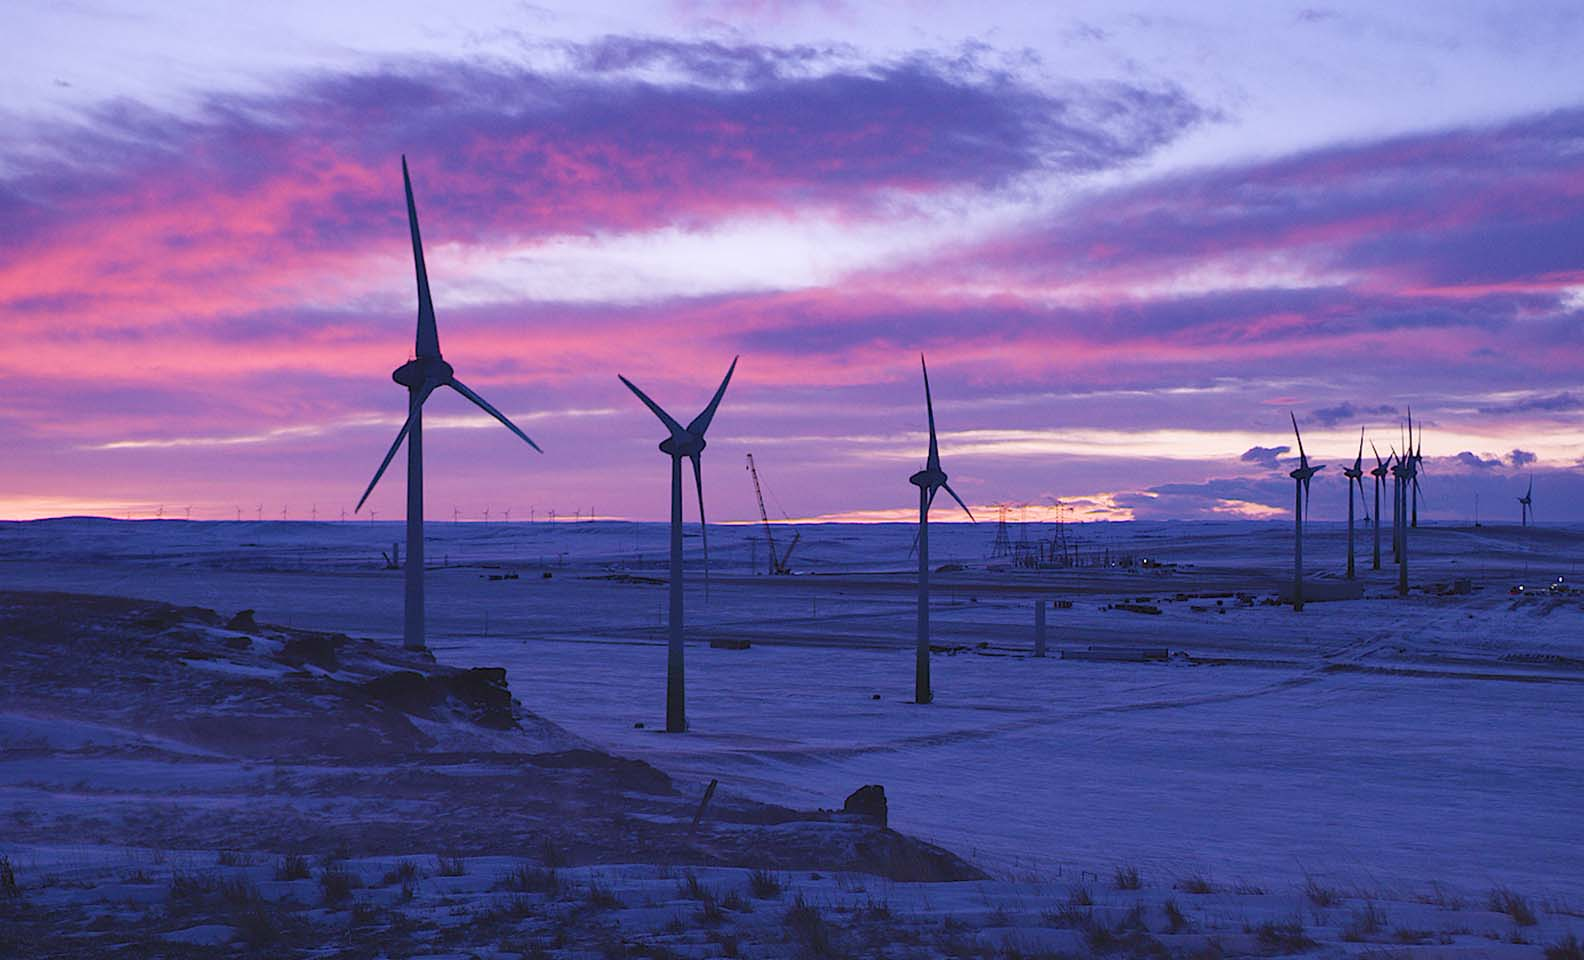 Wind turbines at sunset over snowy landscape